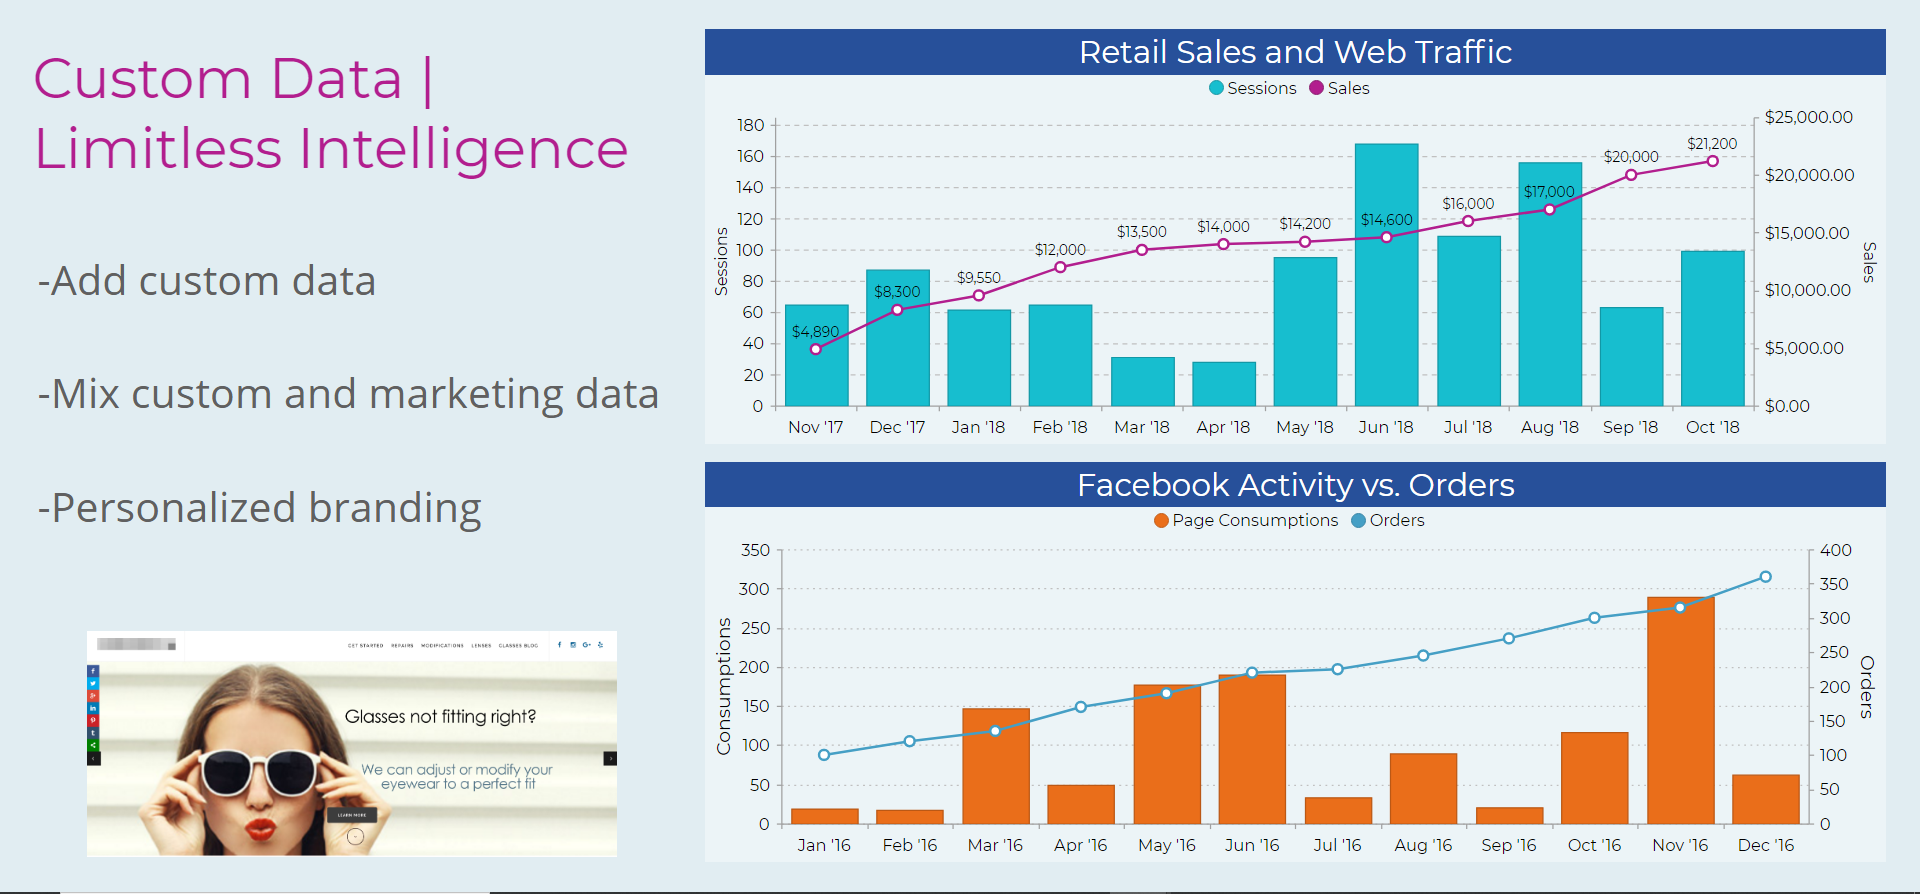 Deftly can sync and integrate custom data such as sales, leads, deals from a spreadsheet.